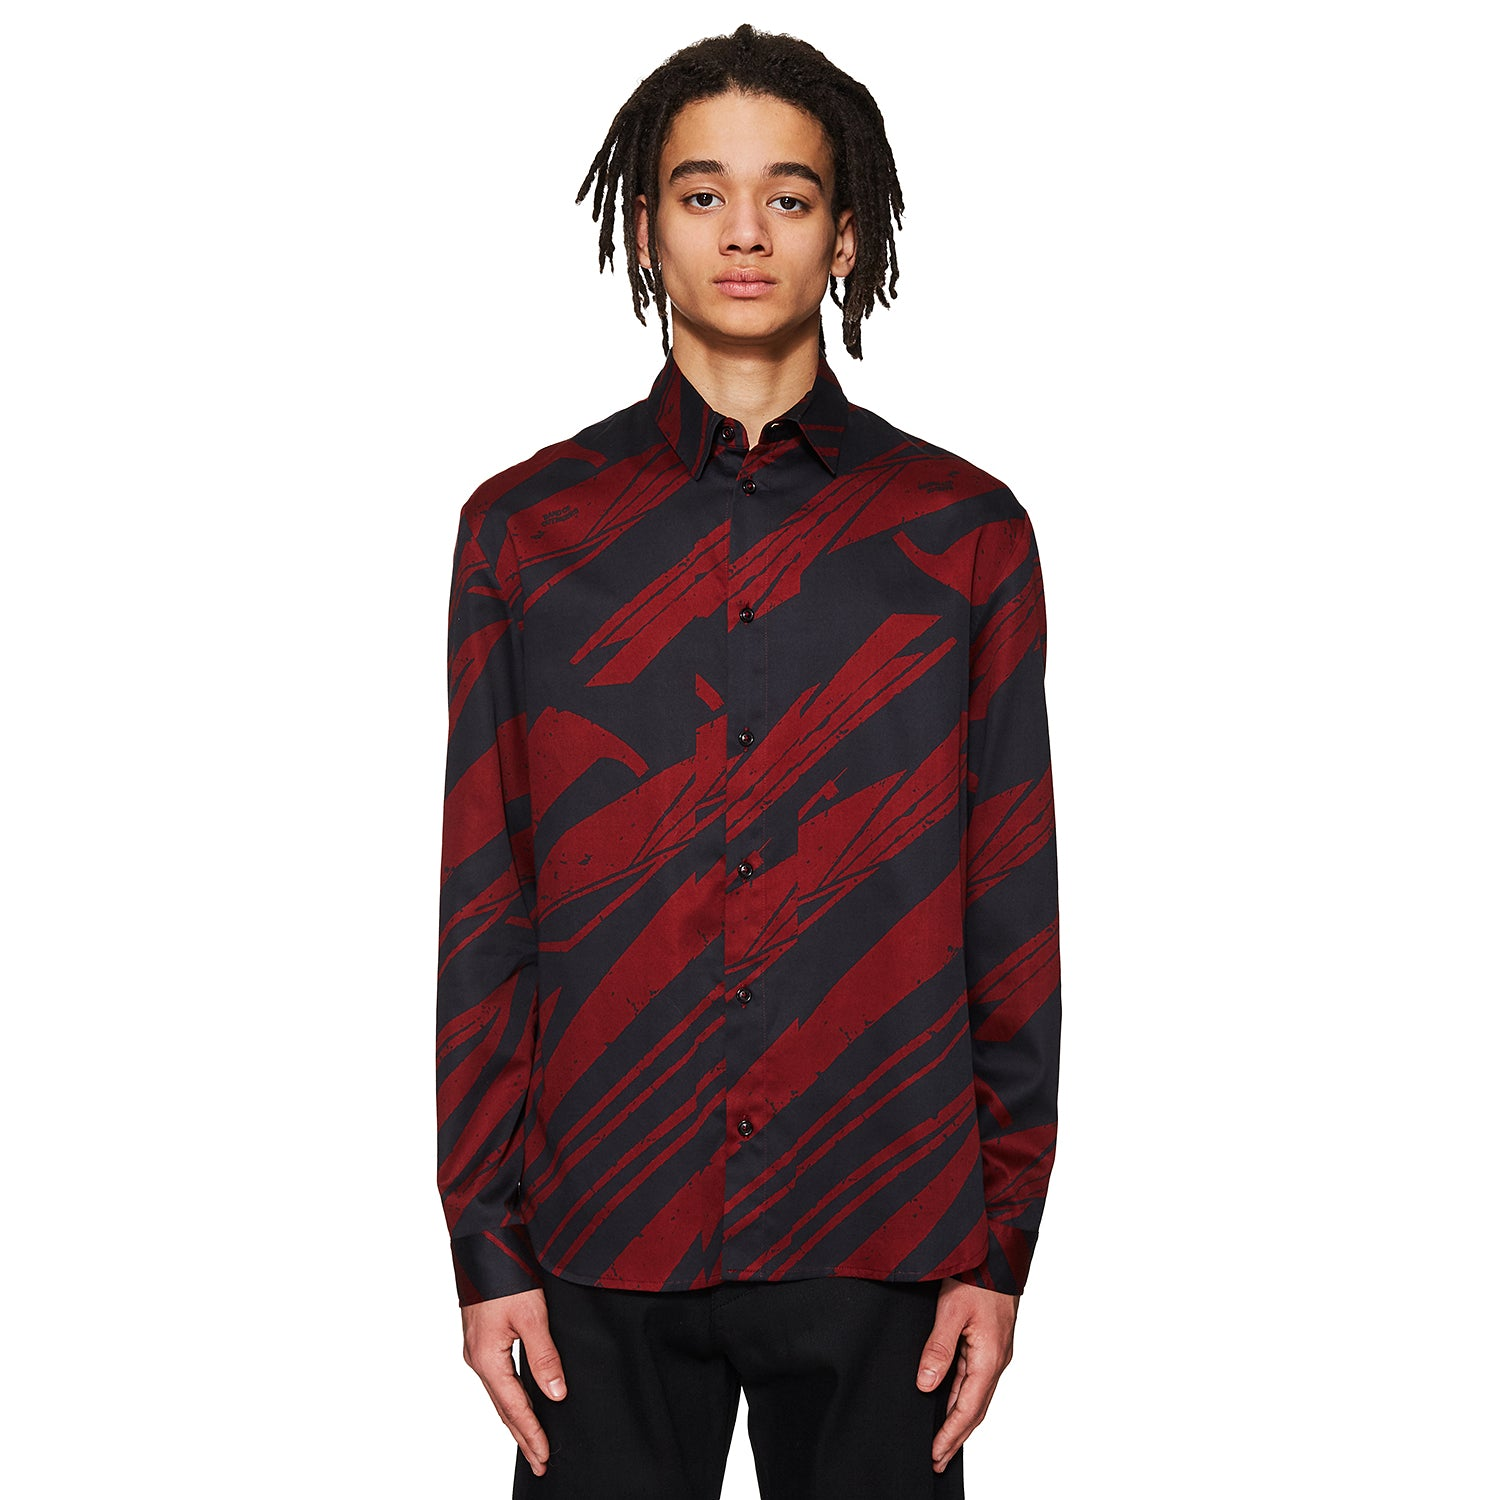 Spaceship Print Shirt Burgundy